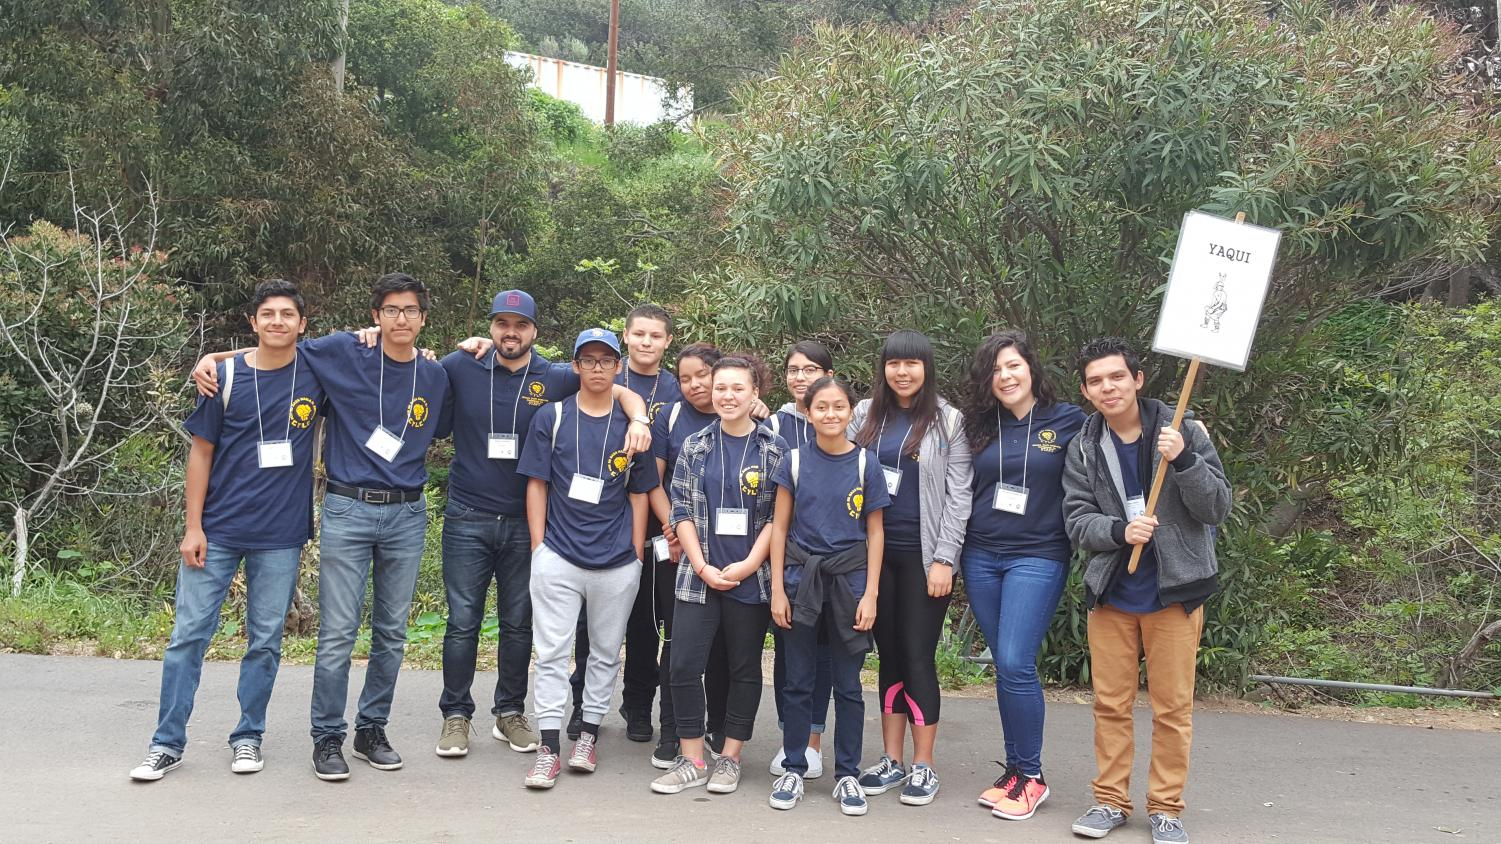 Students continue to attend the Chicano Youth Leadership Conference to discuss educational issues in a culturally enriched environment. Senior Anthony Freyre attended this conference back in his junior year.